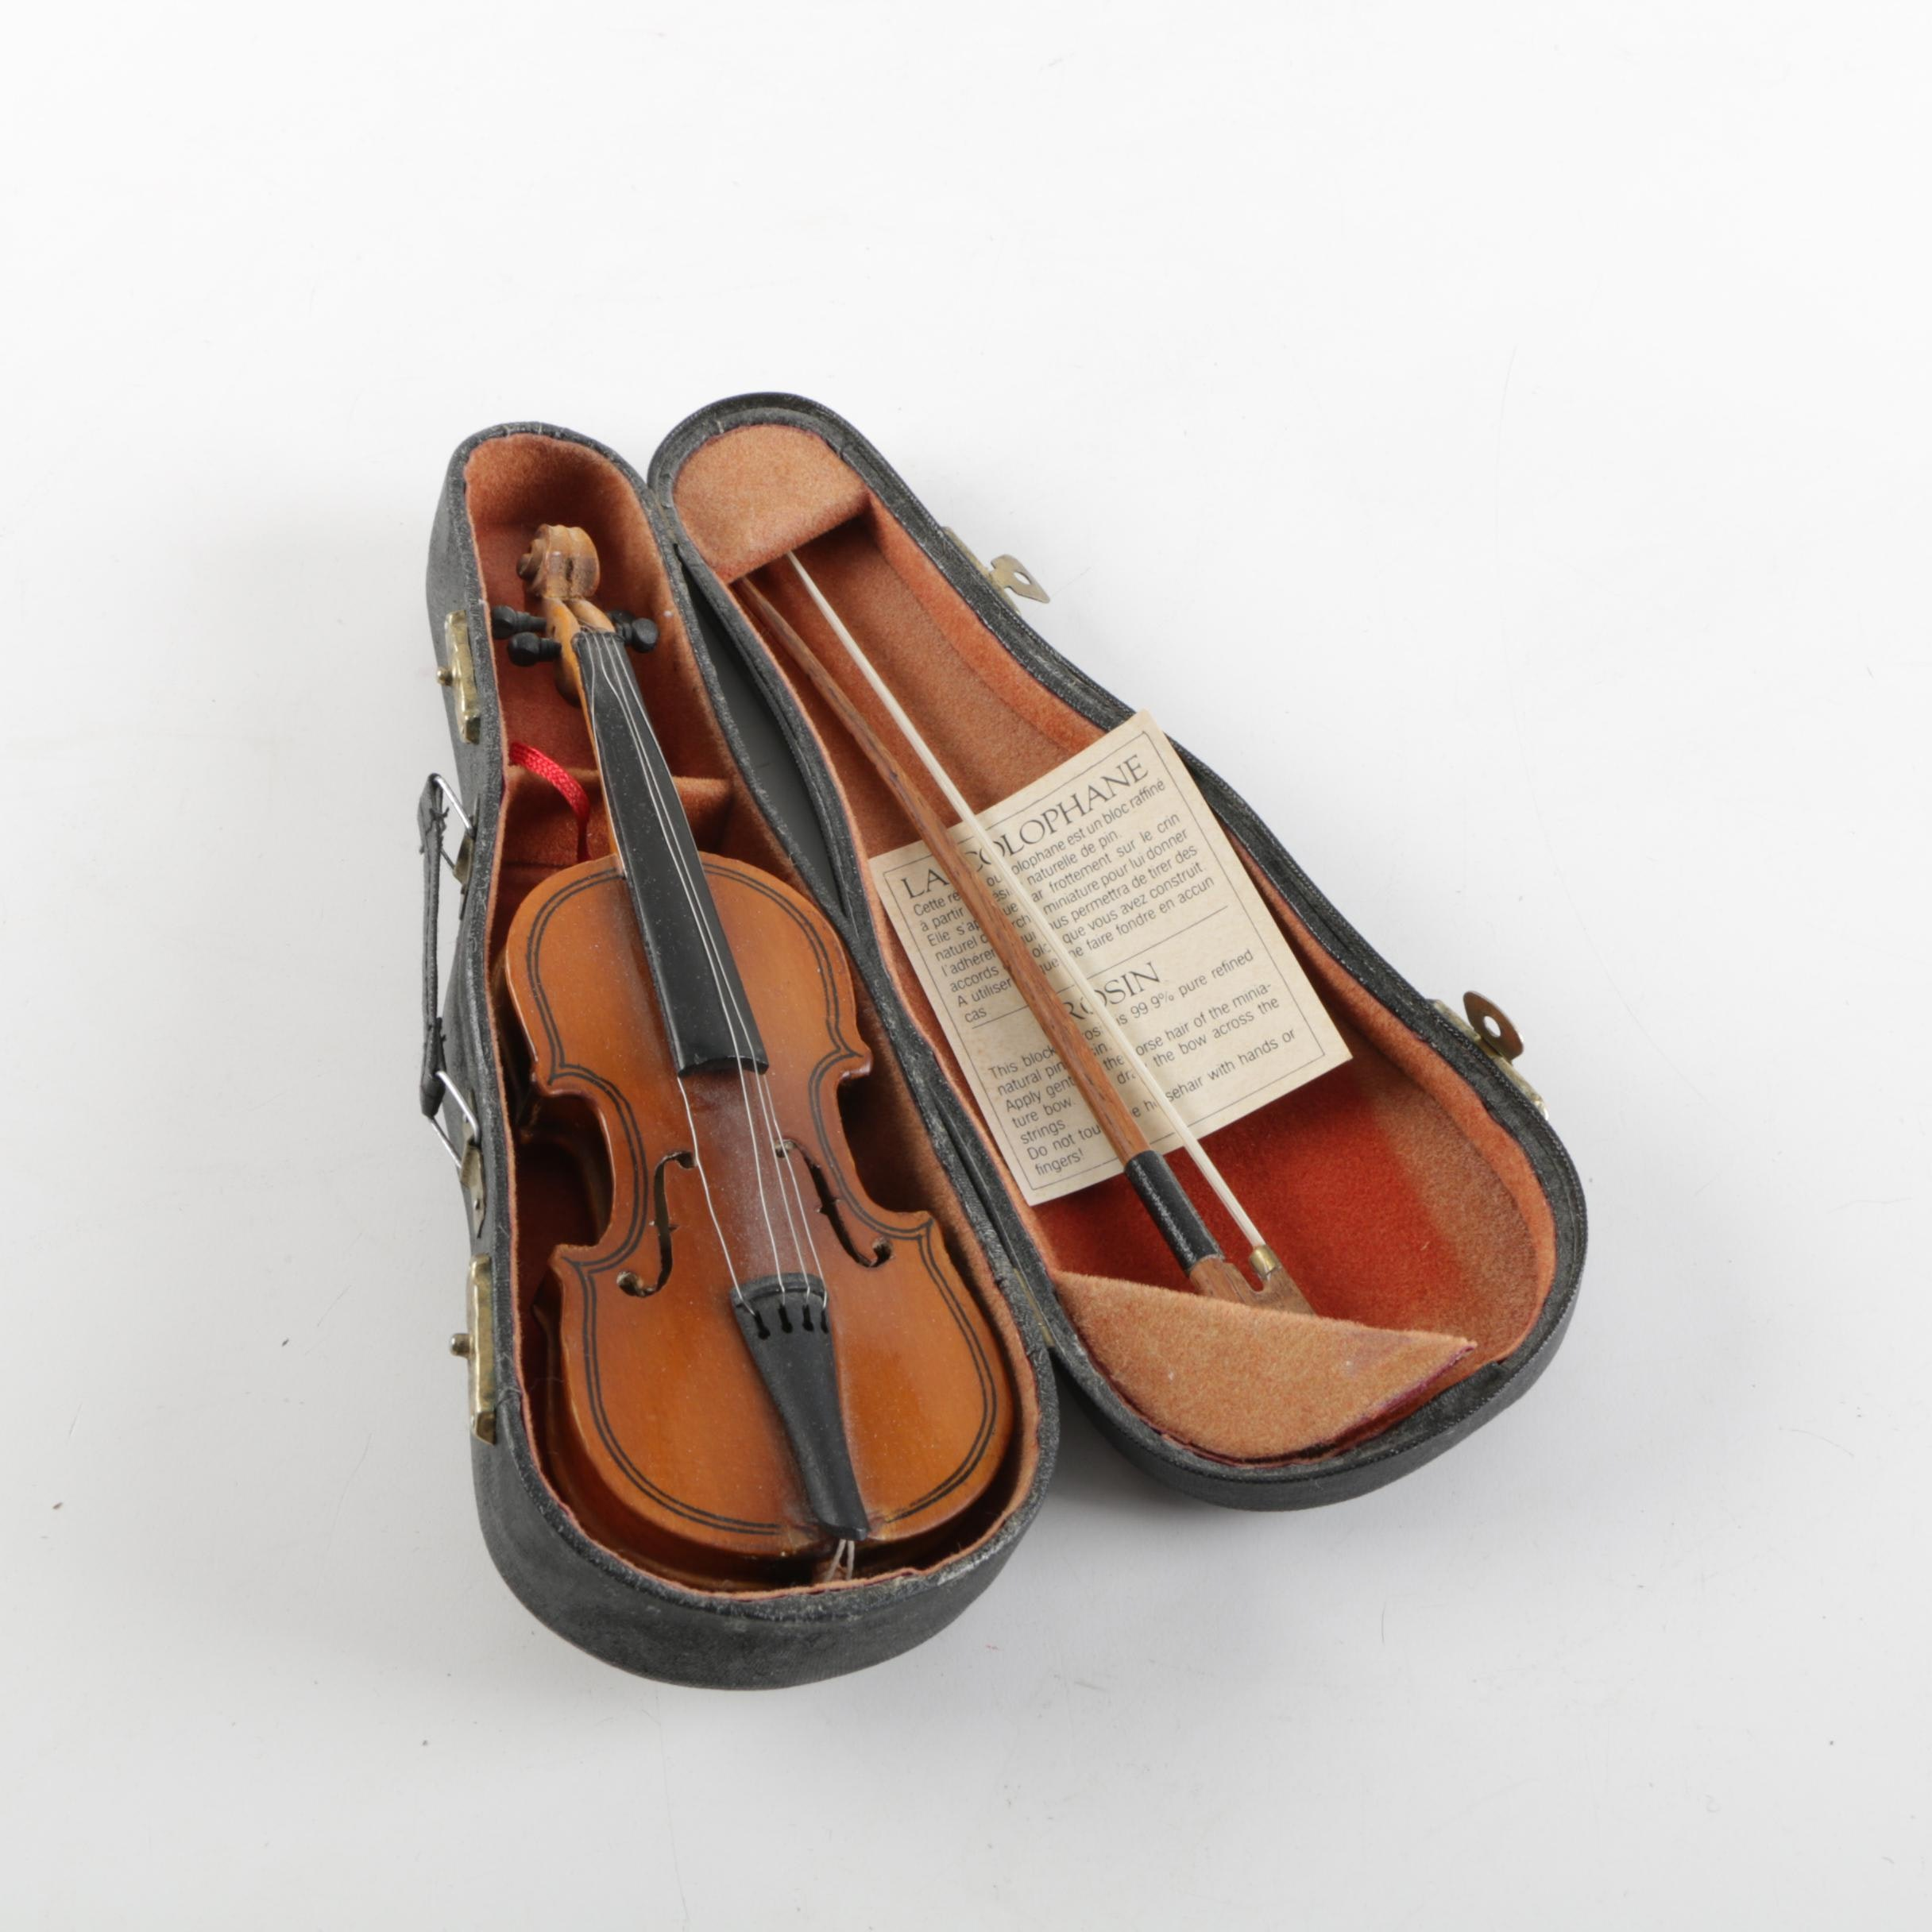 Authentic Models Holland Miniature Violin